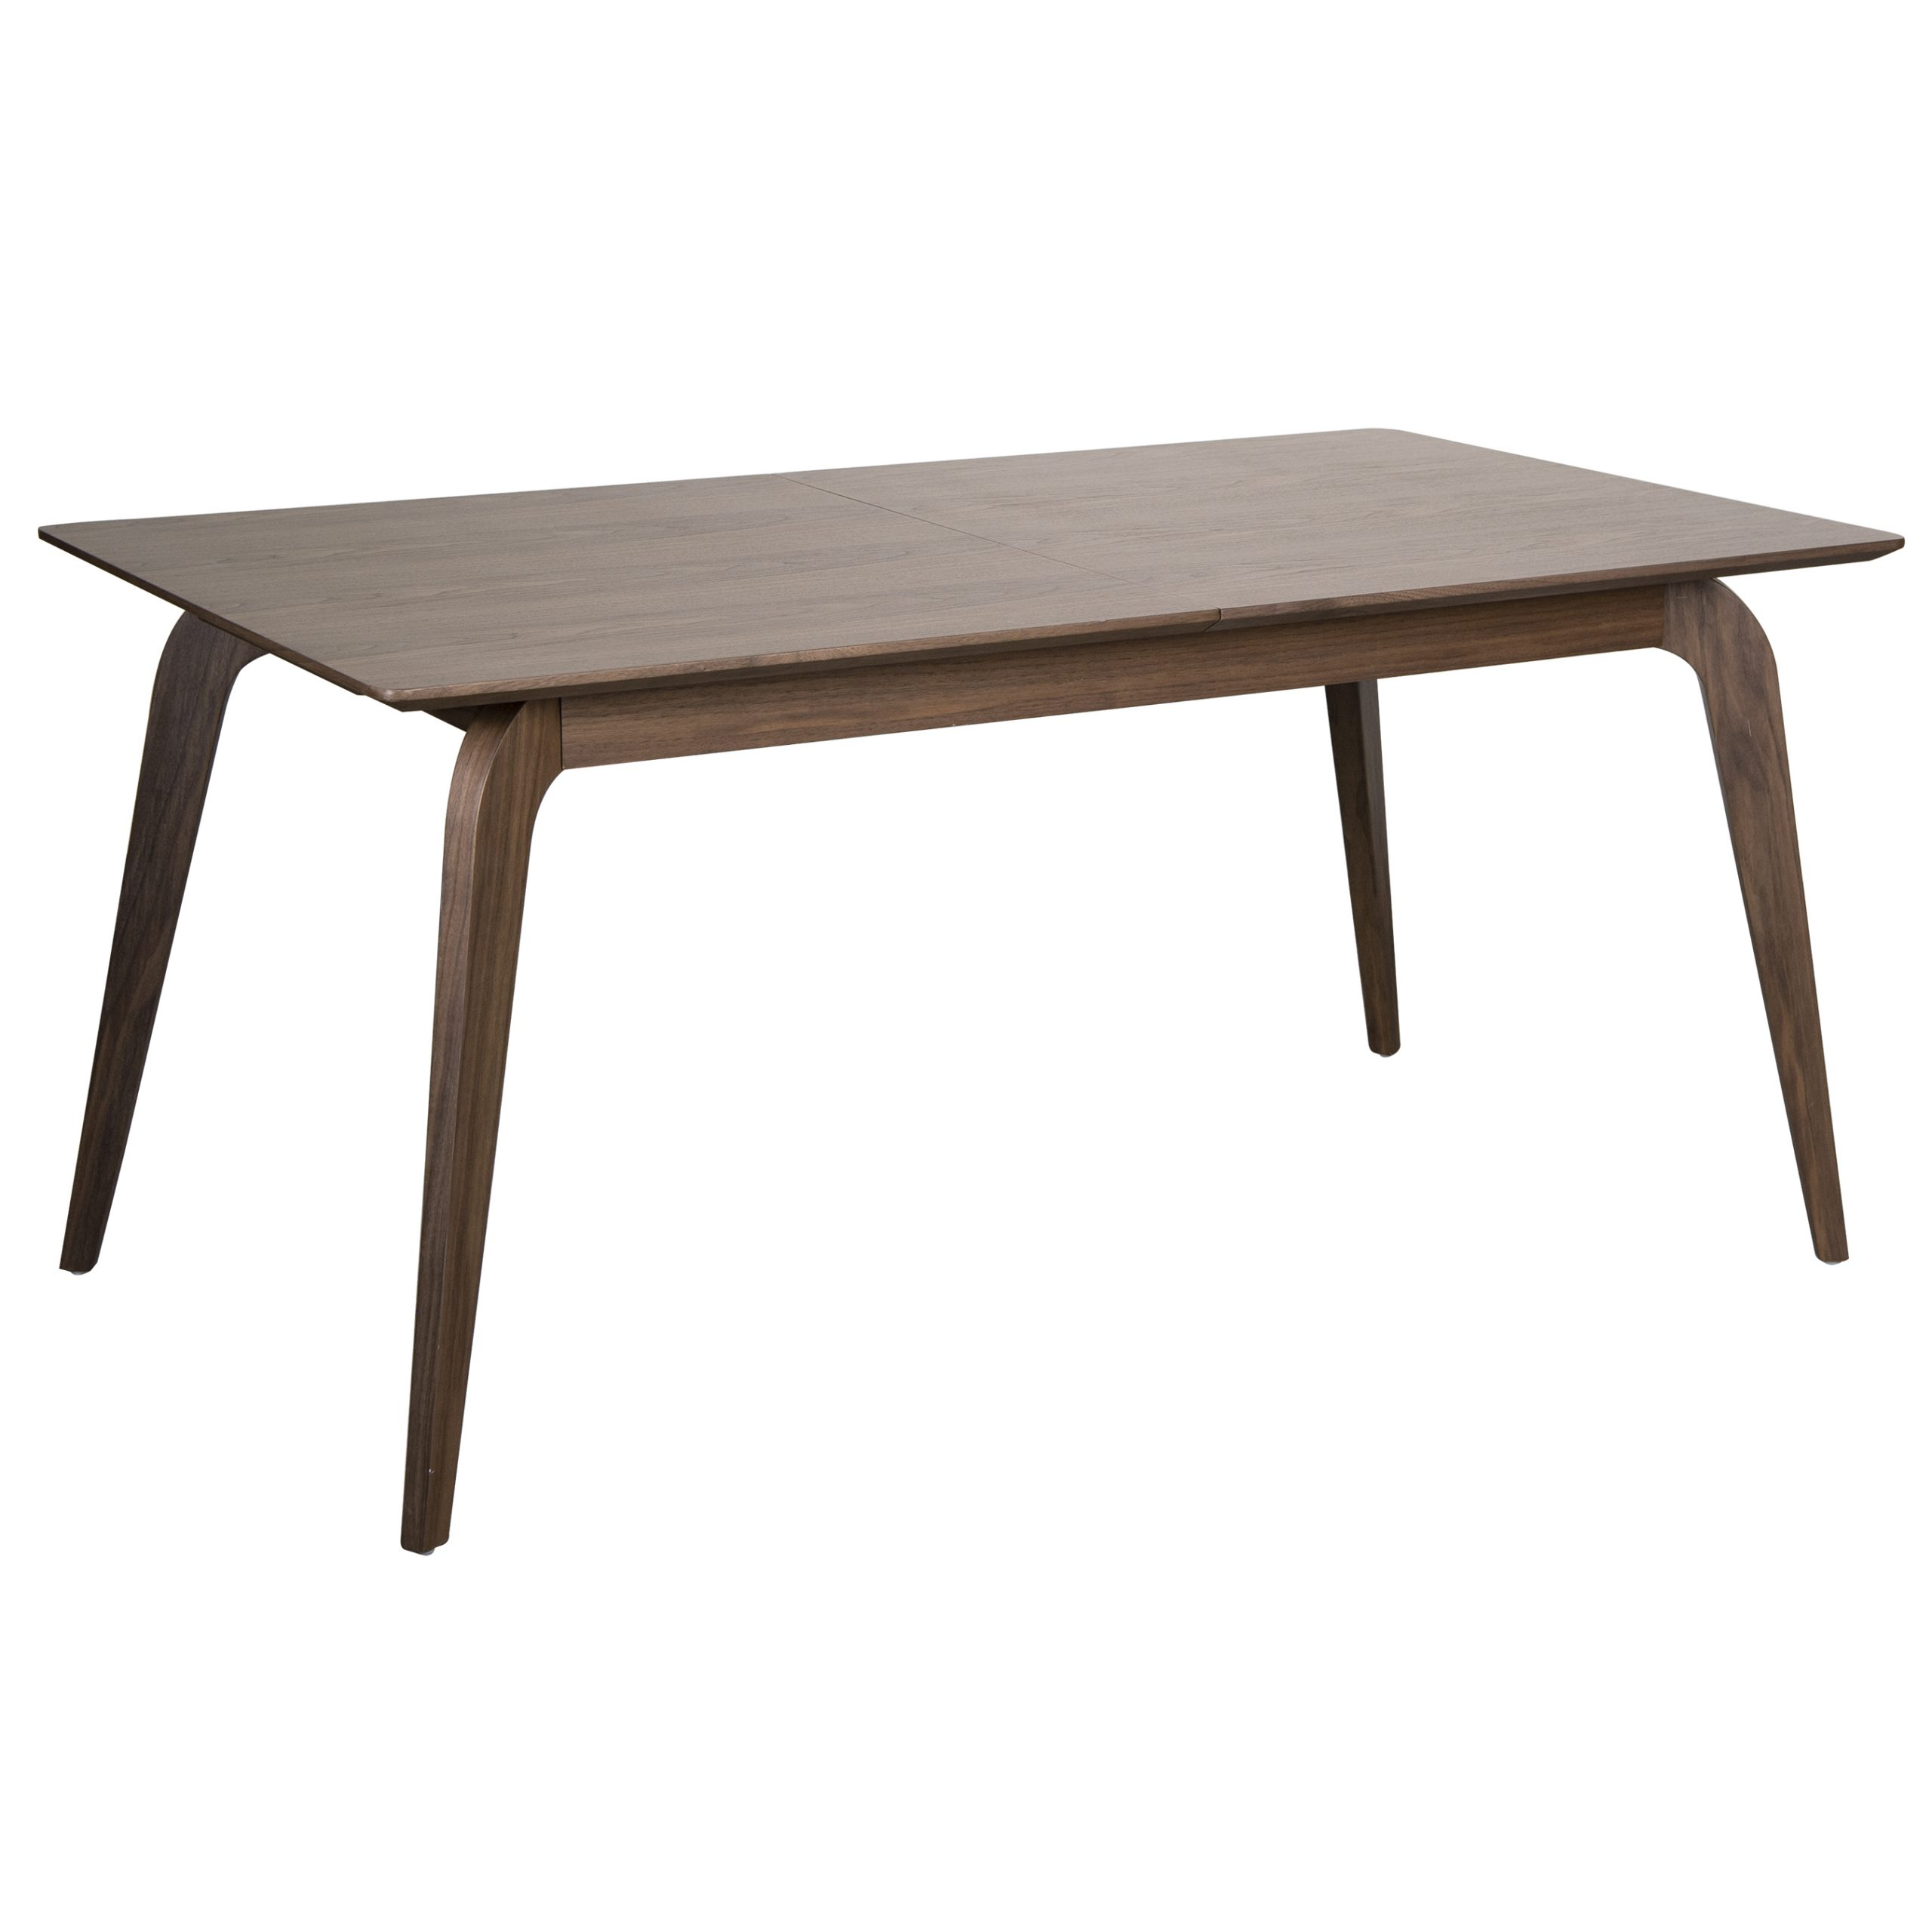 Lawrence Extension Dining Table – Euro Style For Current Mateo Extending Dining Tables (View 5 of 25)